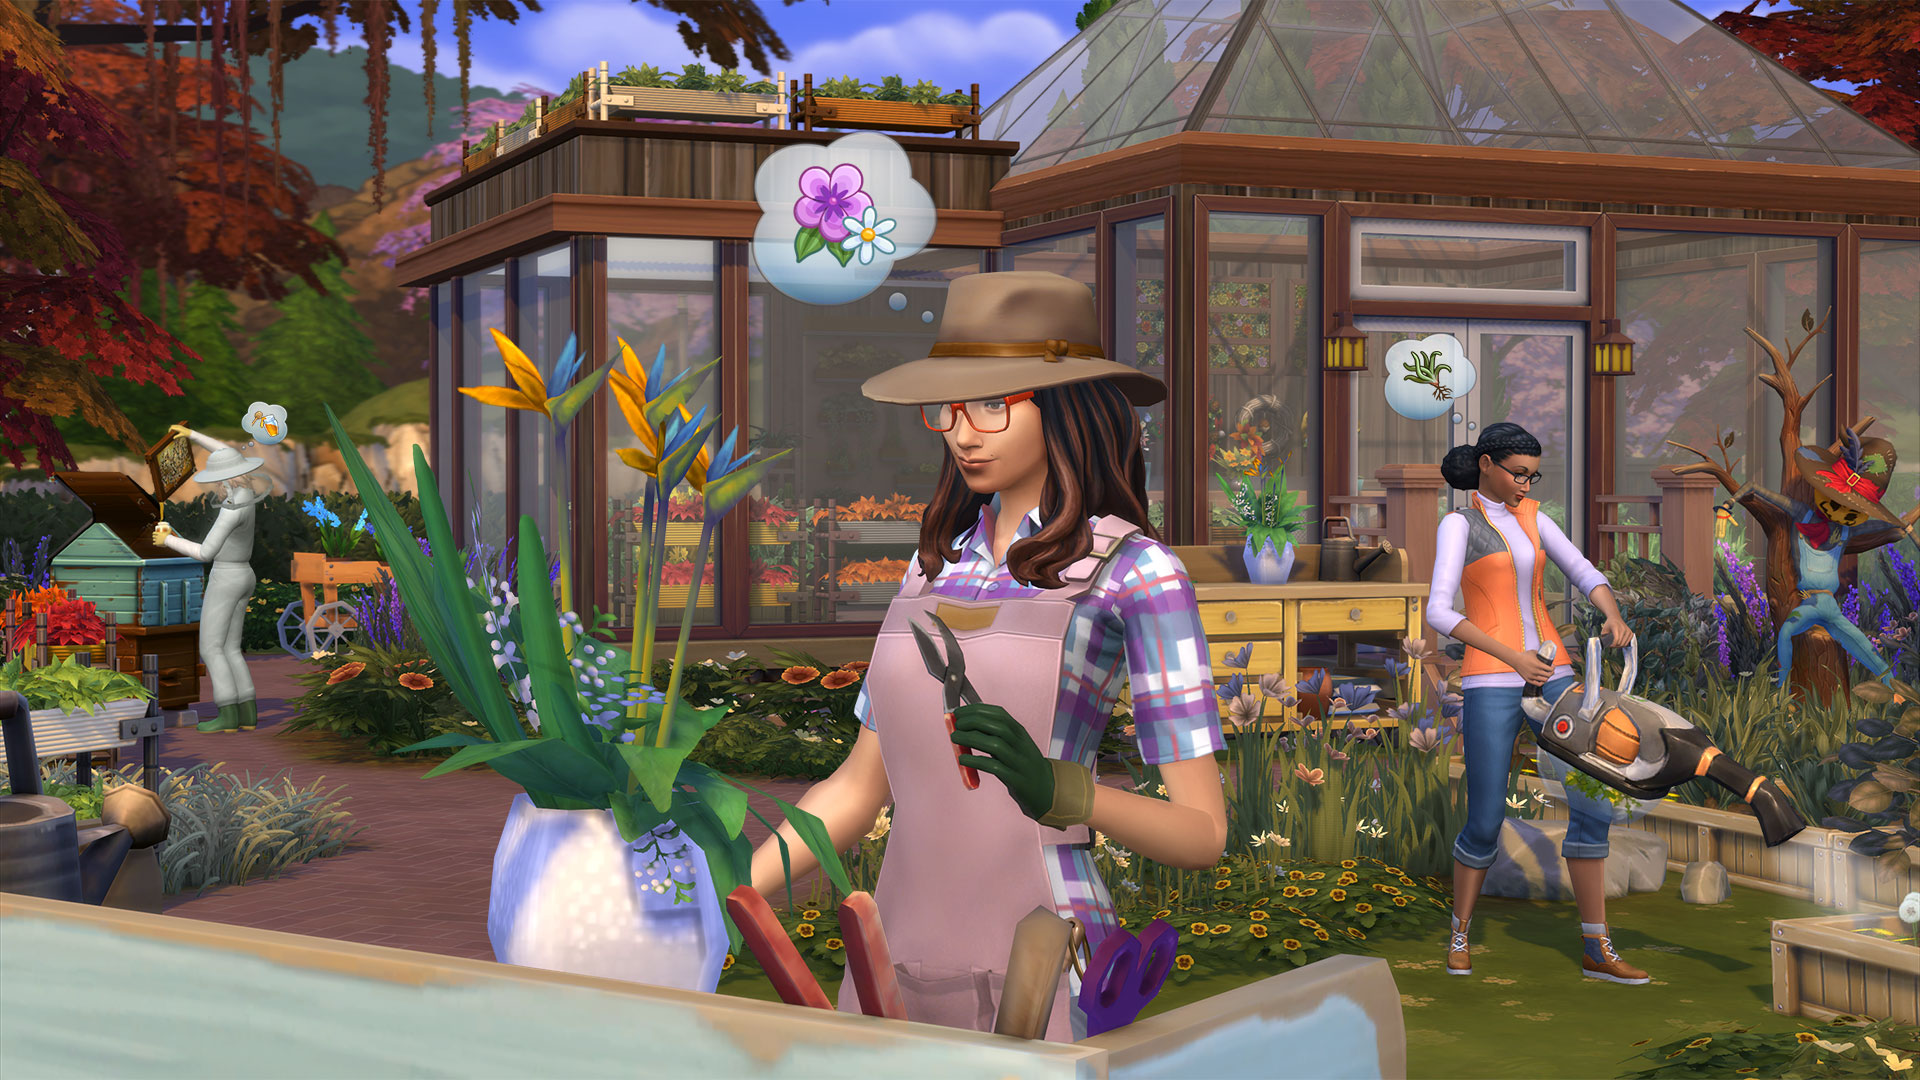 The Sims 4 2020 review